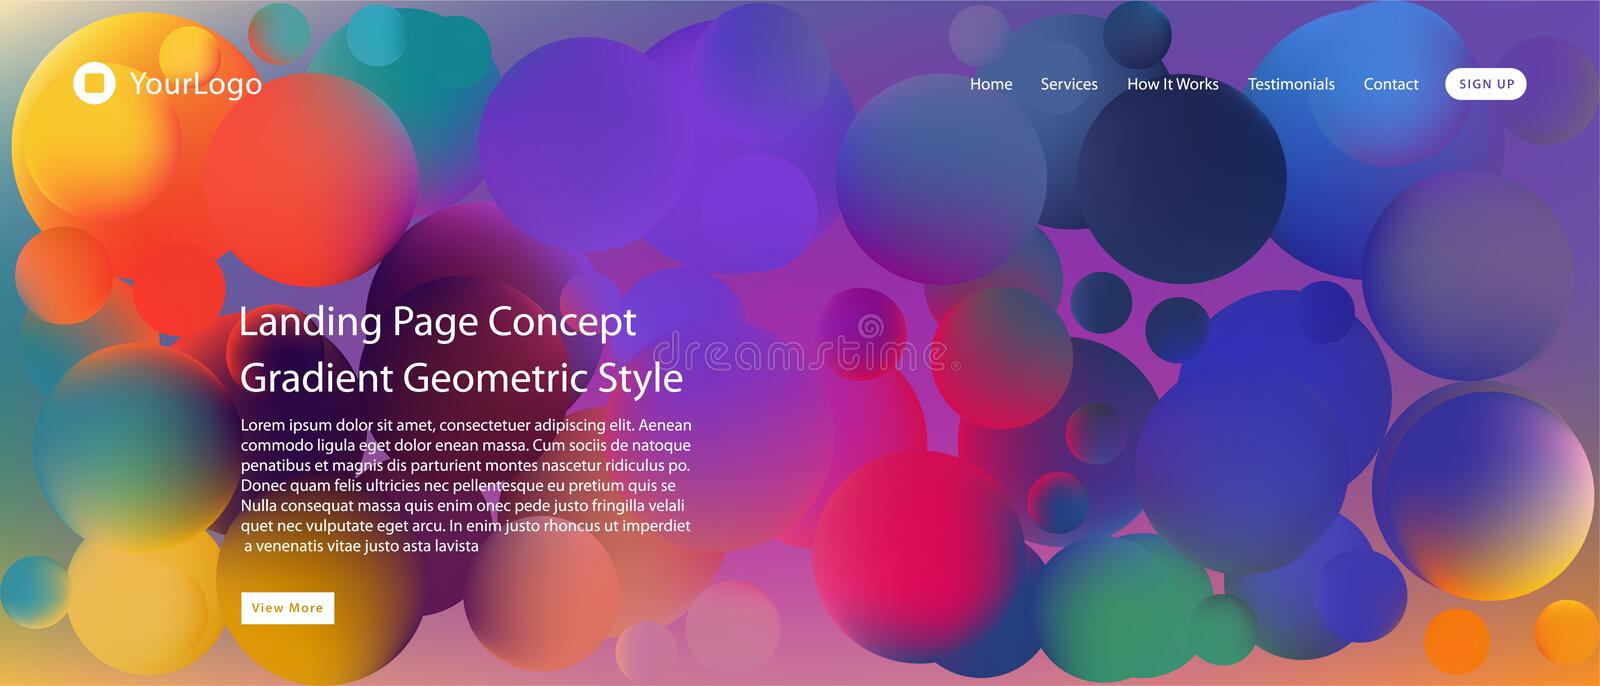 Website or mobile app landing page with illustration of Abstract Colorful Minimal Geometric Pattern Background Design and Gradient royalty free illustration